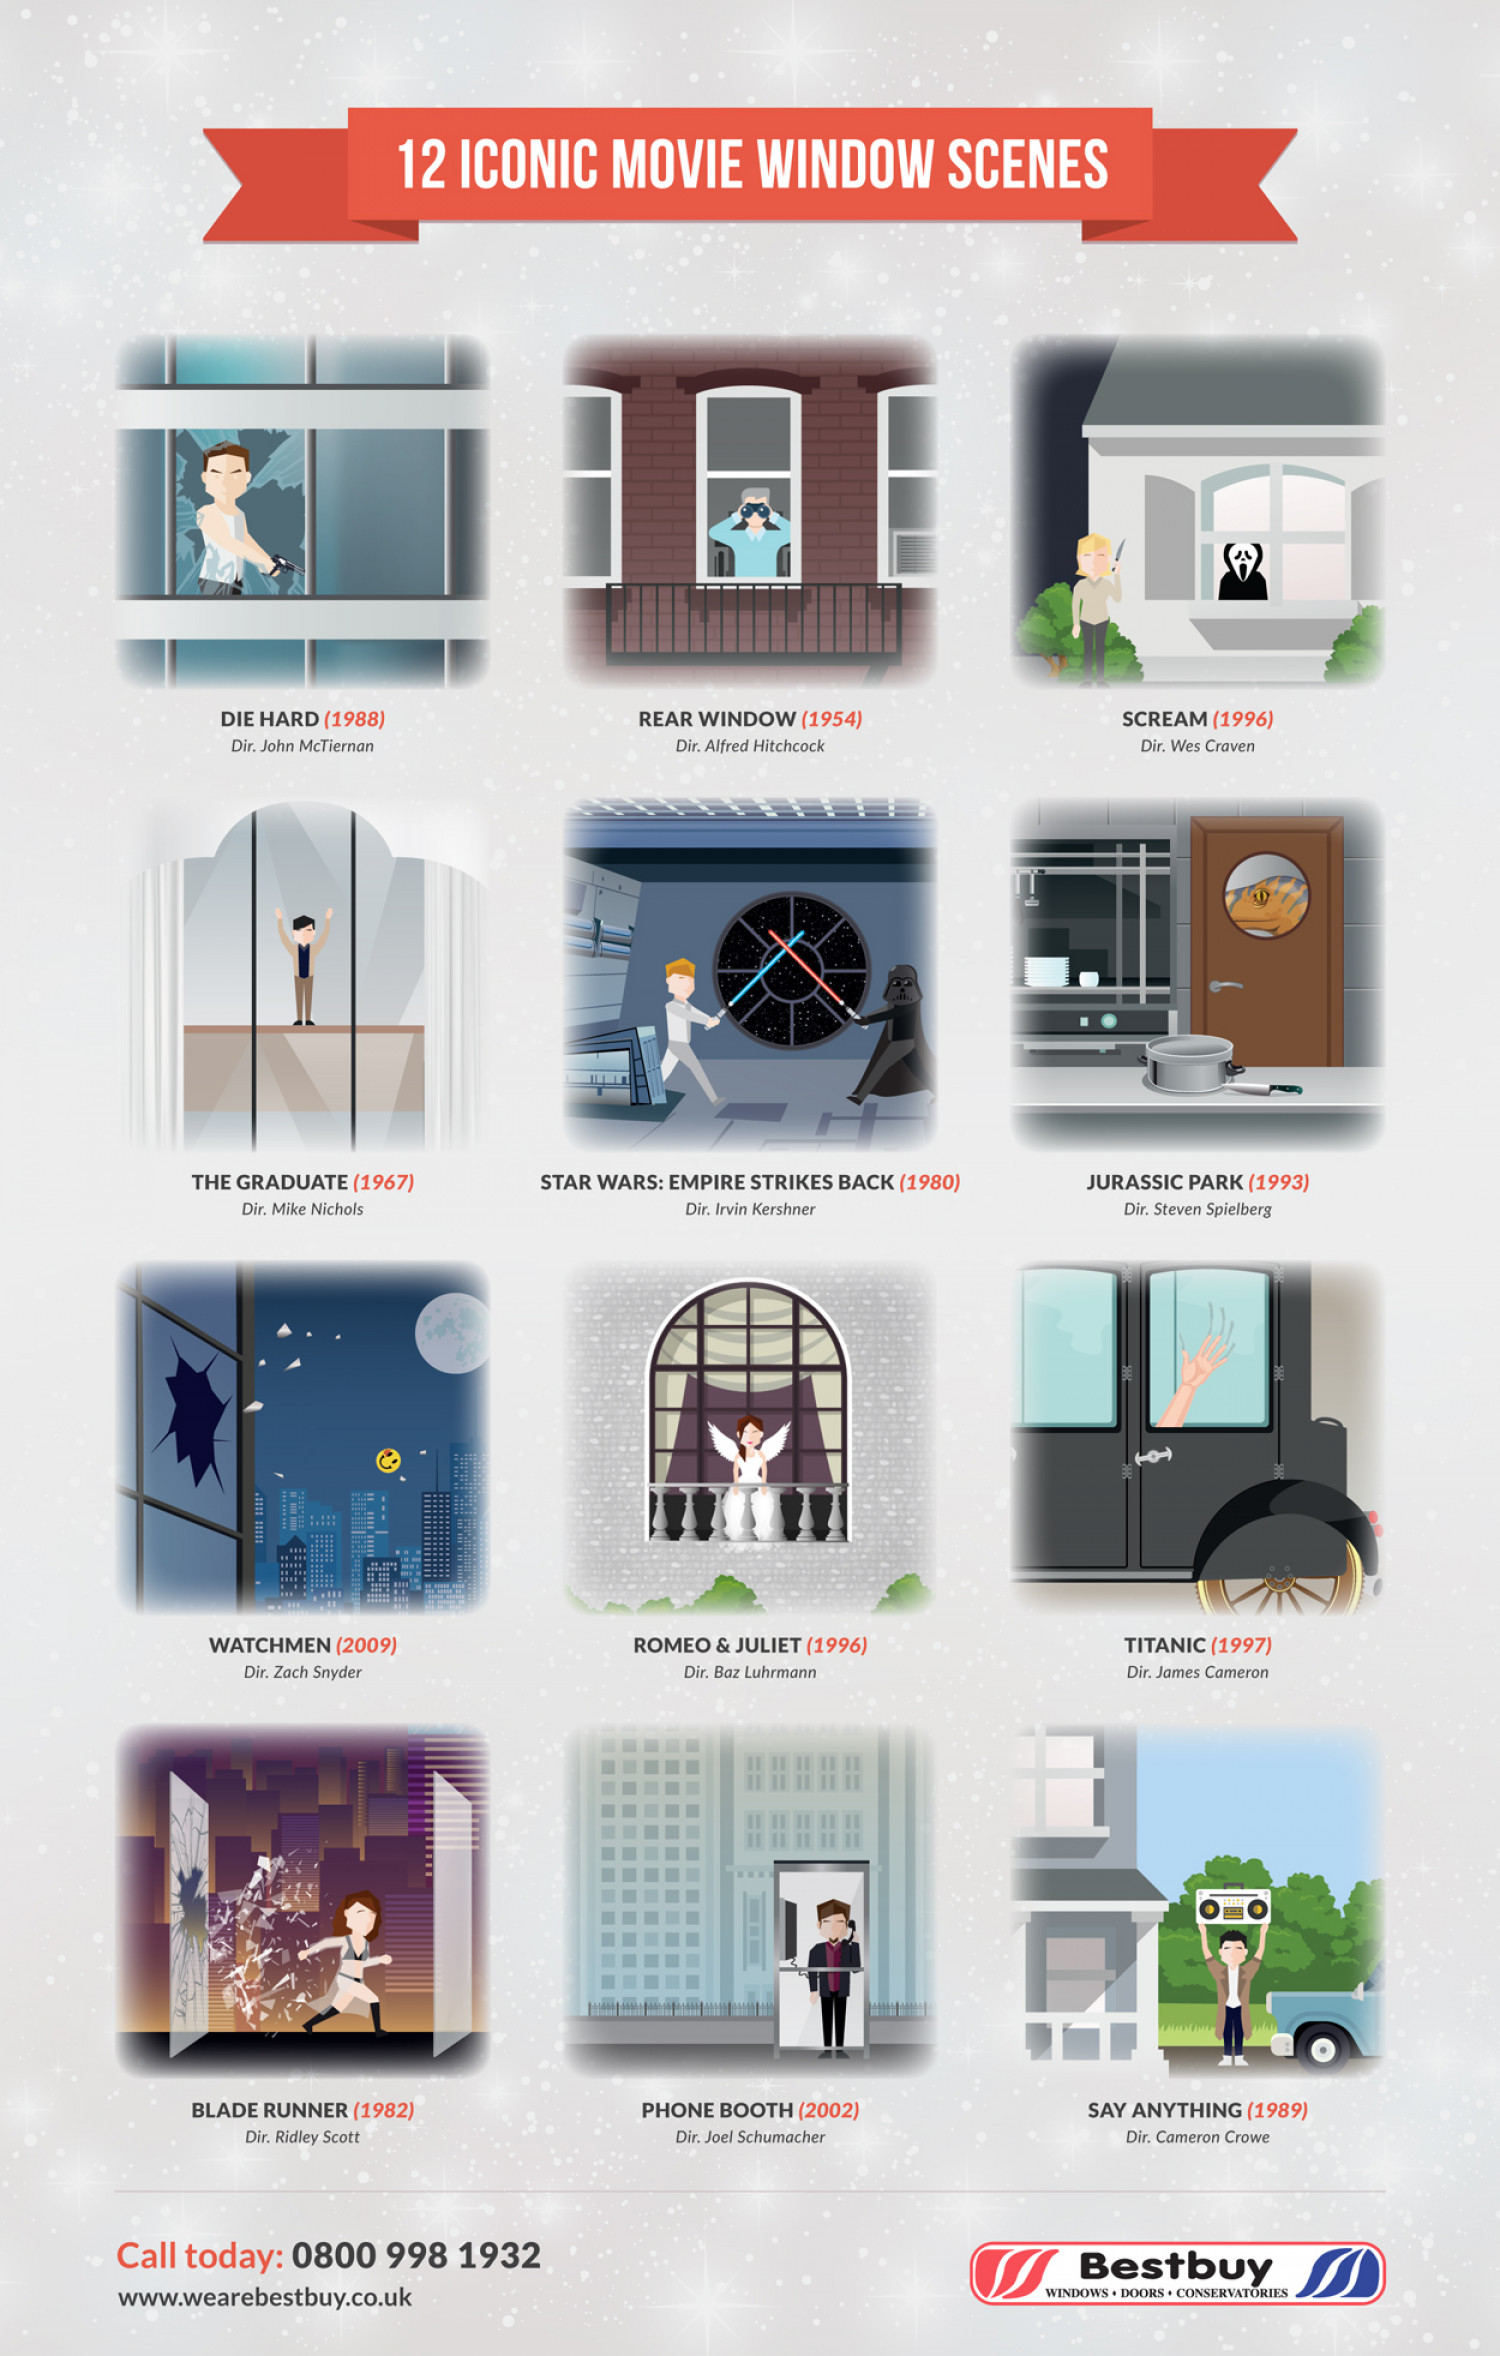 Iconic Window Scenes in Movies Infographic